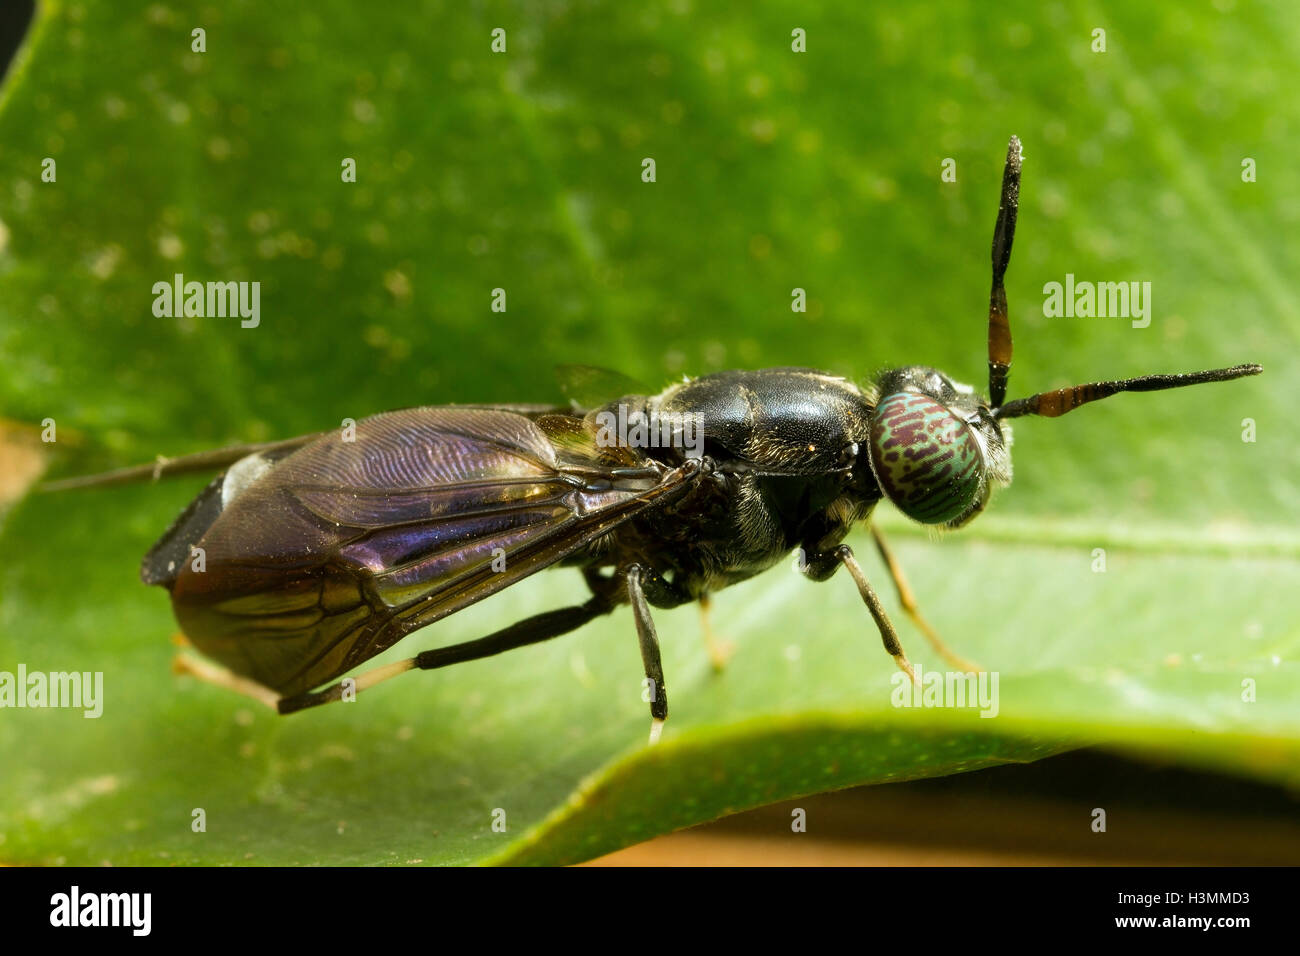 Black soldier fly - Stock Image